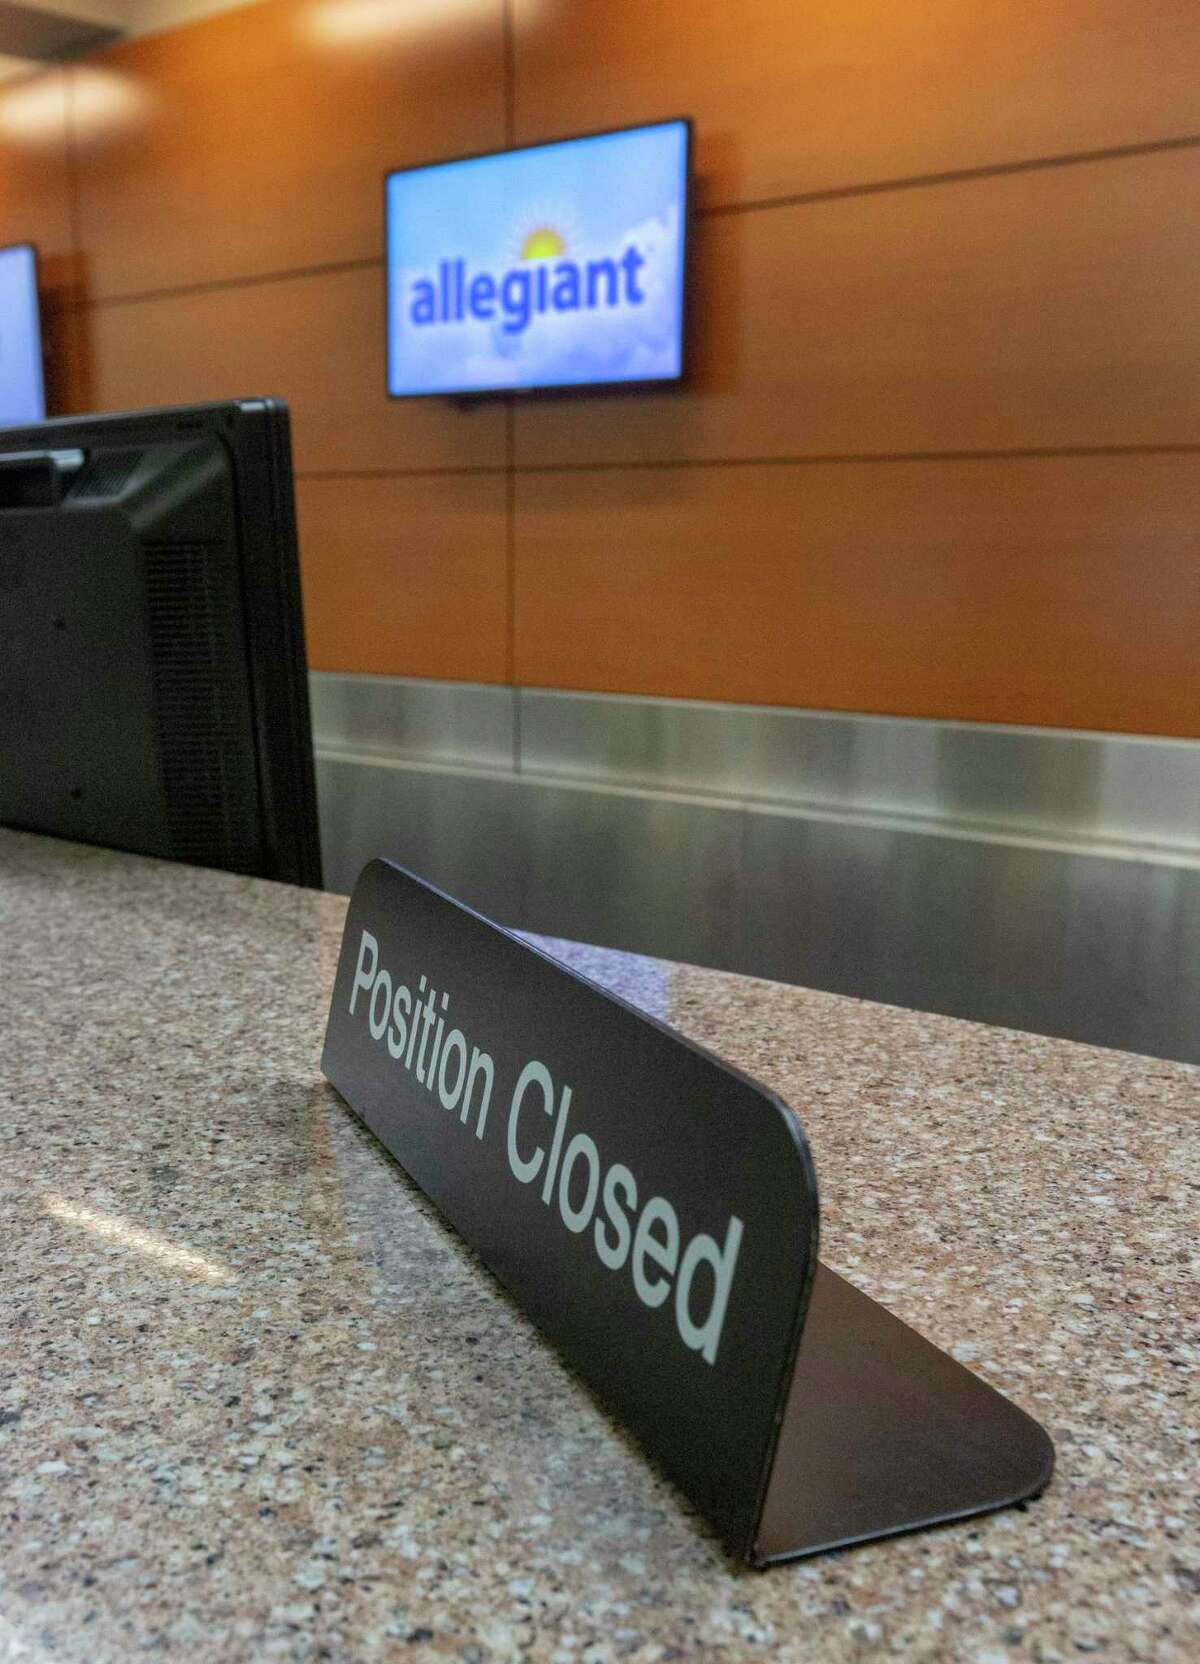 The Allegiant airline ticket counter stands empty Wednesday, April 22, 2020 at the San Antonio International Airport. Despite receiving $172 million in federal stimulus money, Allegiant is asking for a waiver from the government to allow it to cut San Antonio service.